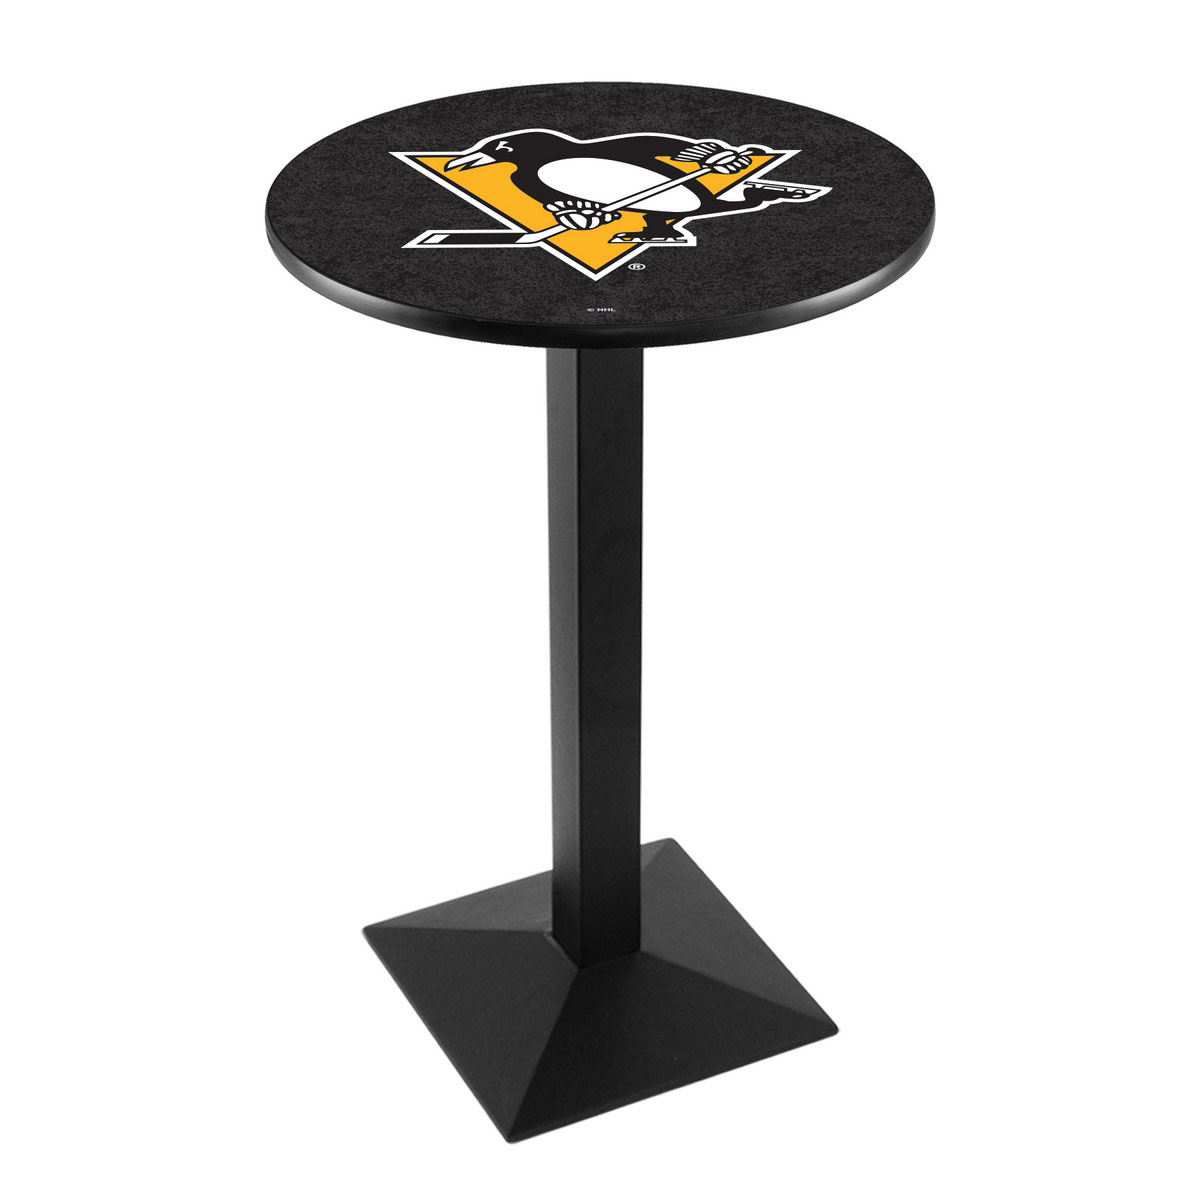 Wonderful Pittsburgh Penguins Logo Pub Bar Table Square Stand Product Photo